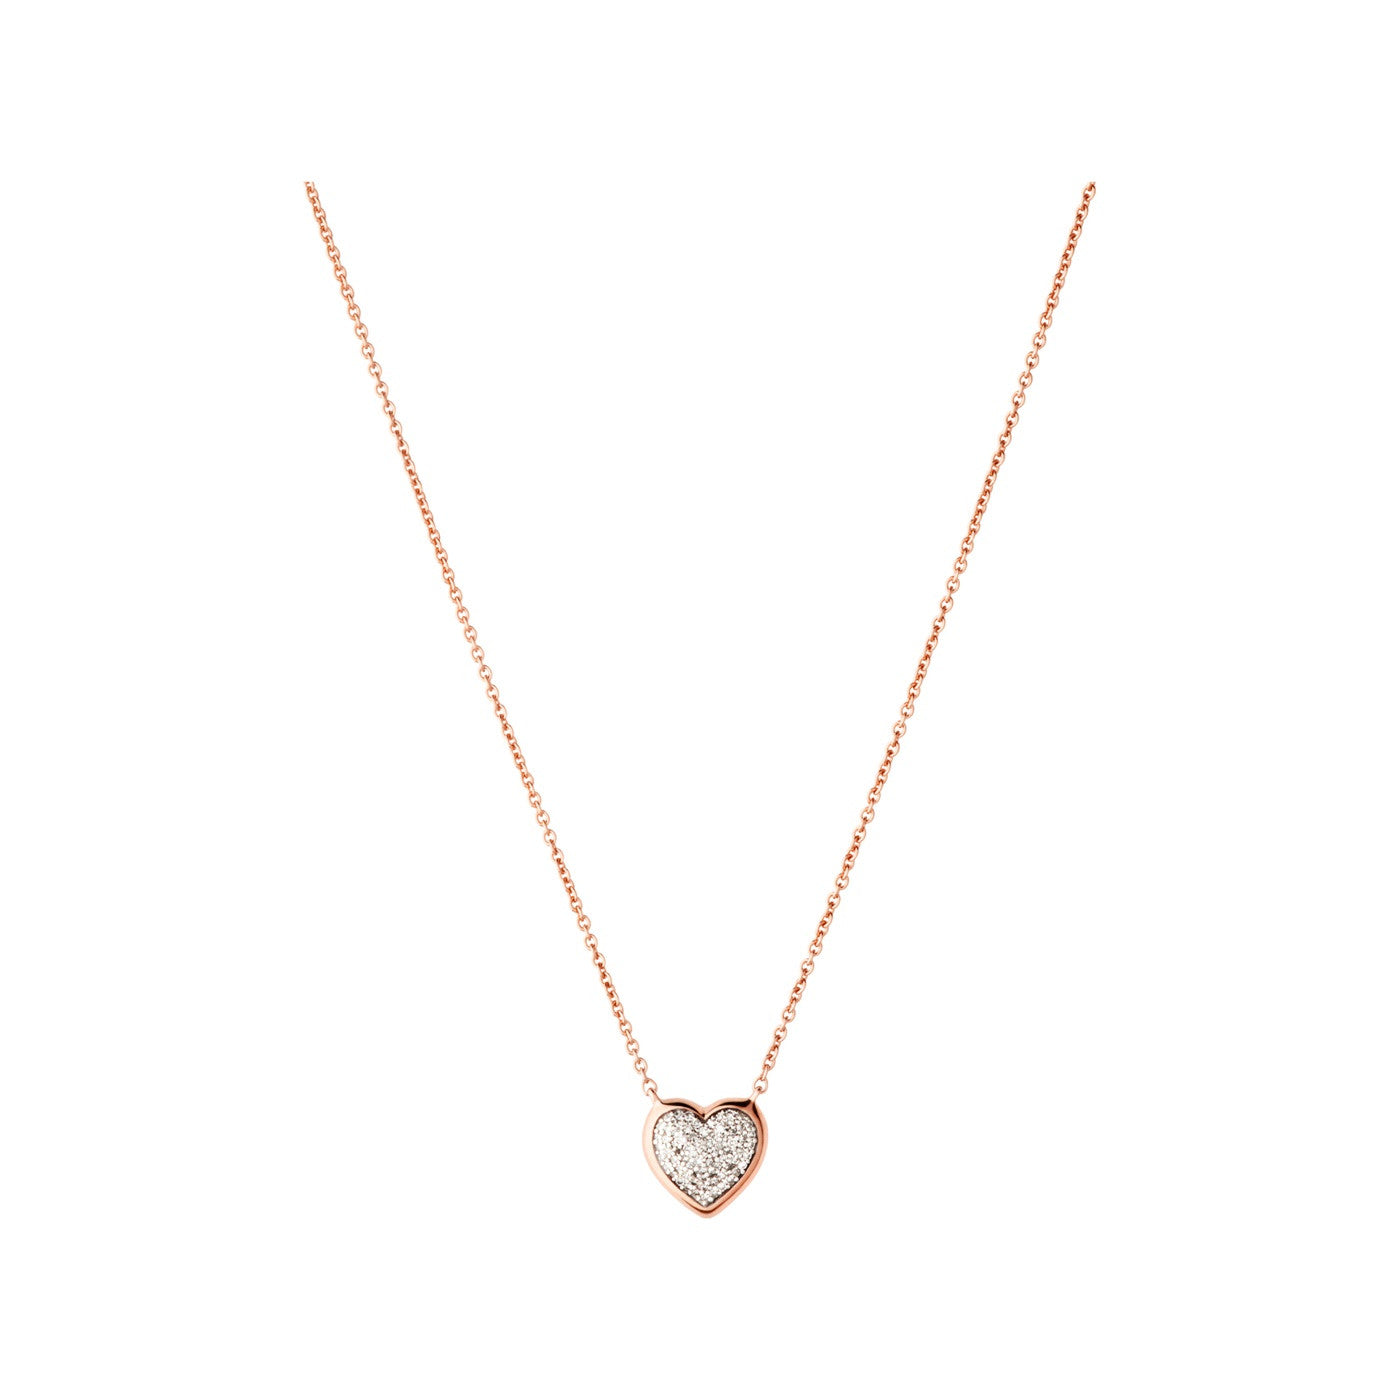 Links of London 18k Rose Gold Vermeil & Pave Heart Necklace - 5020.2728